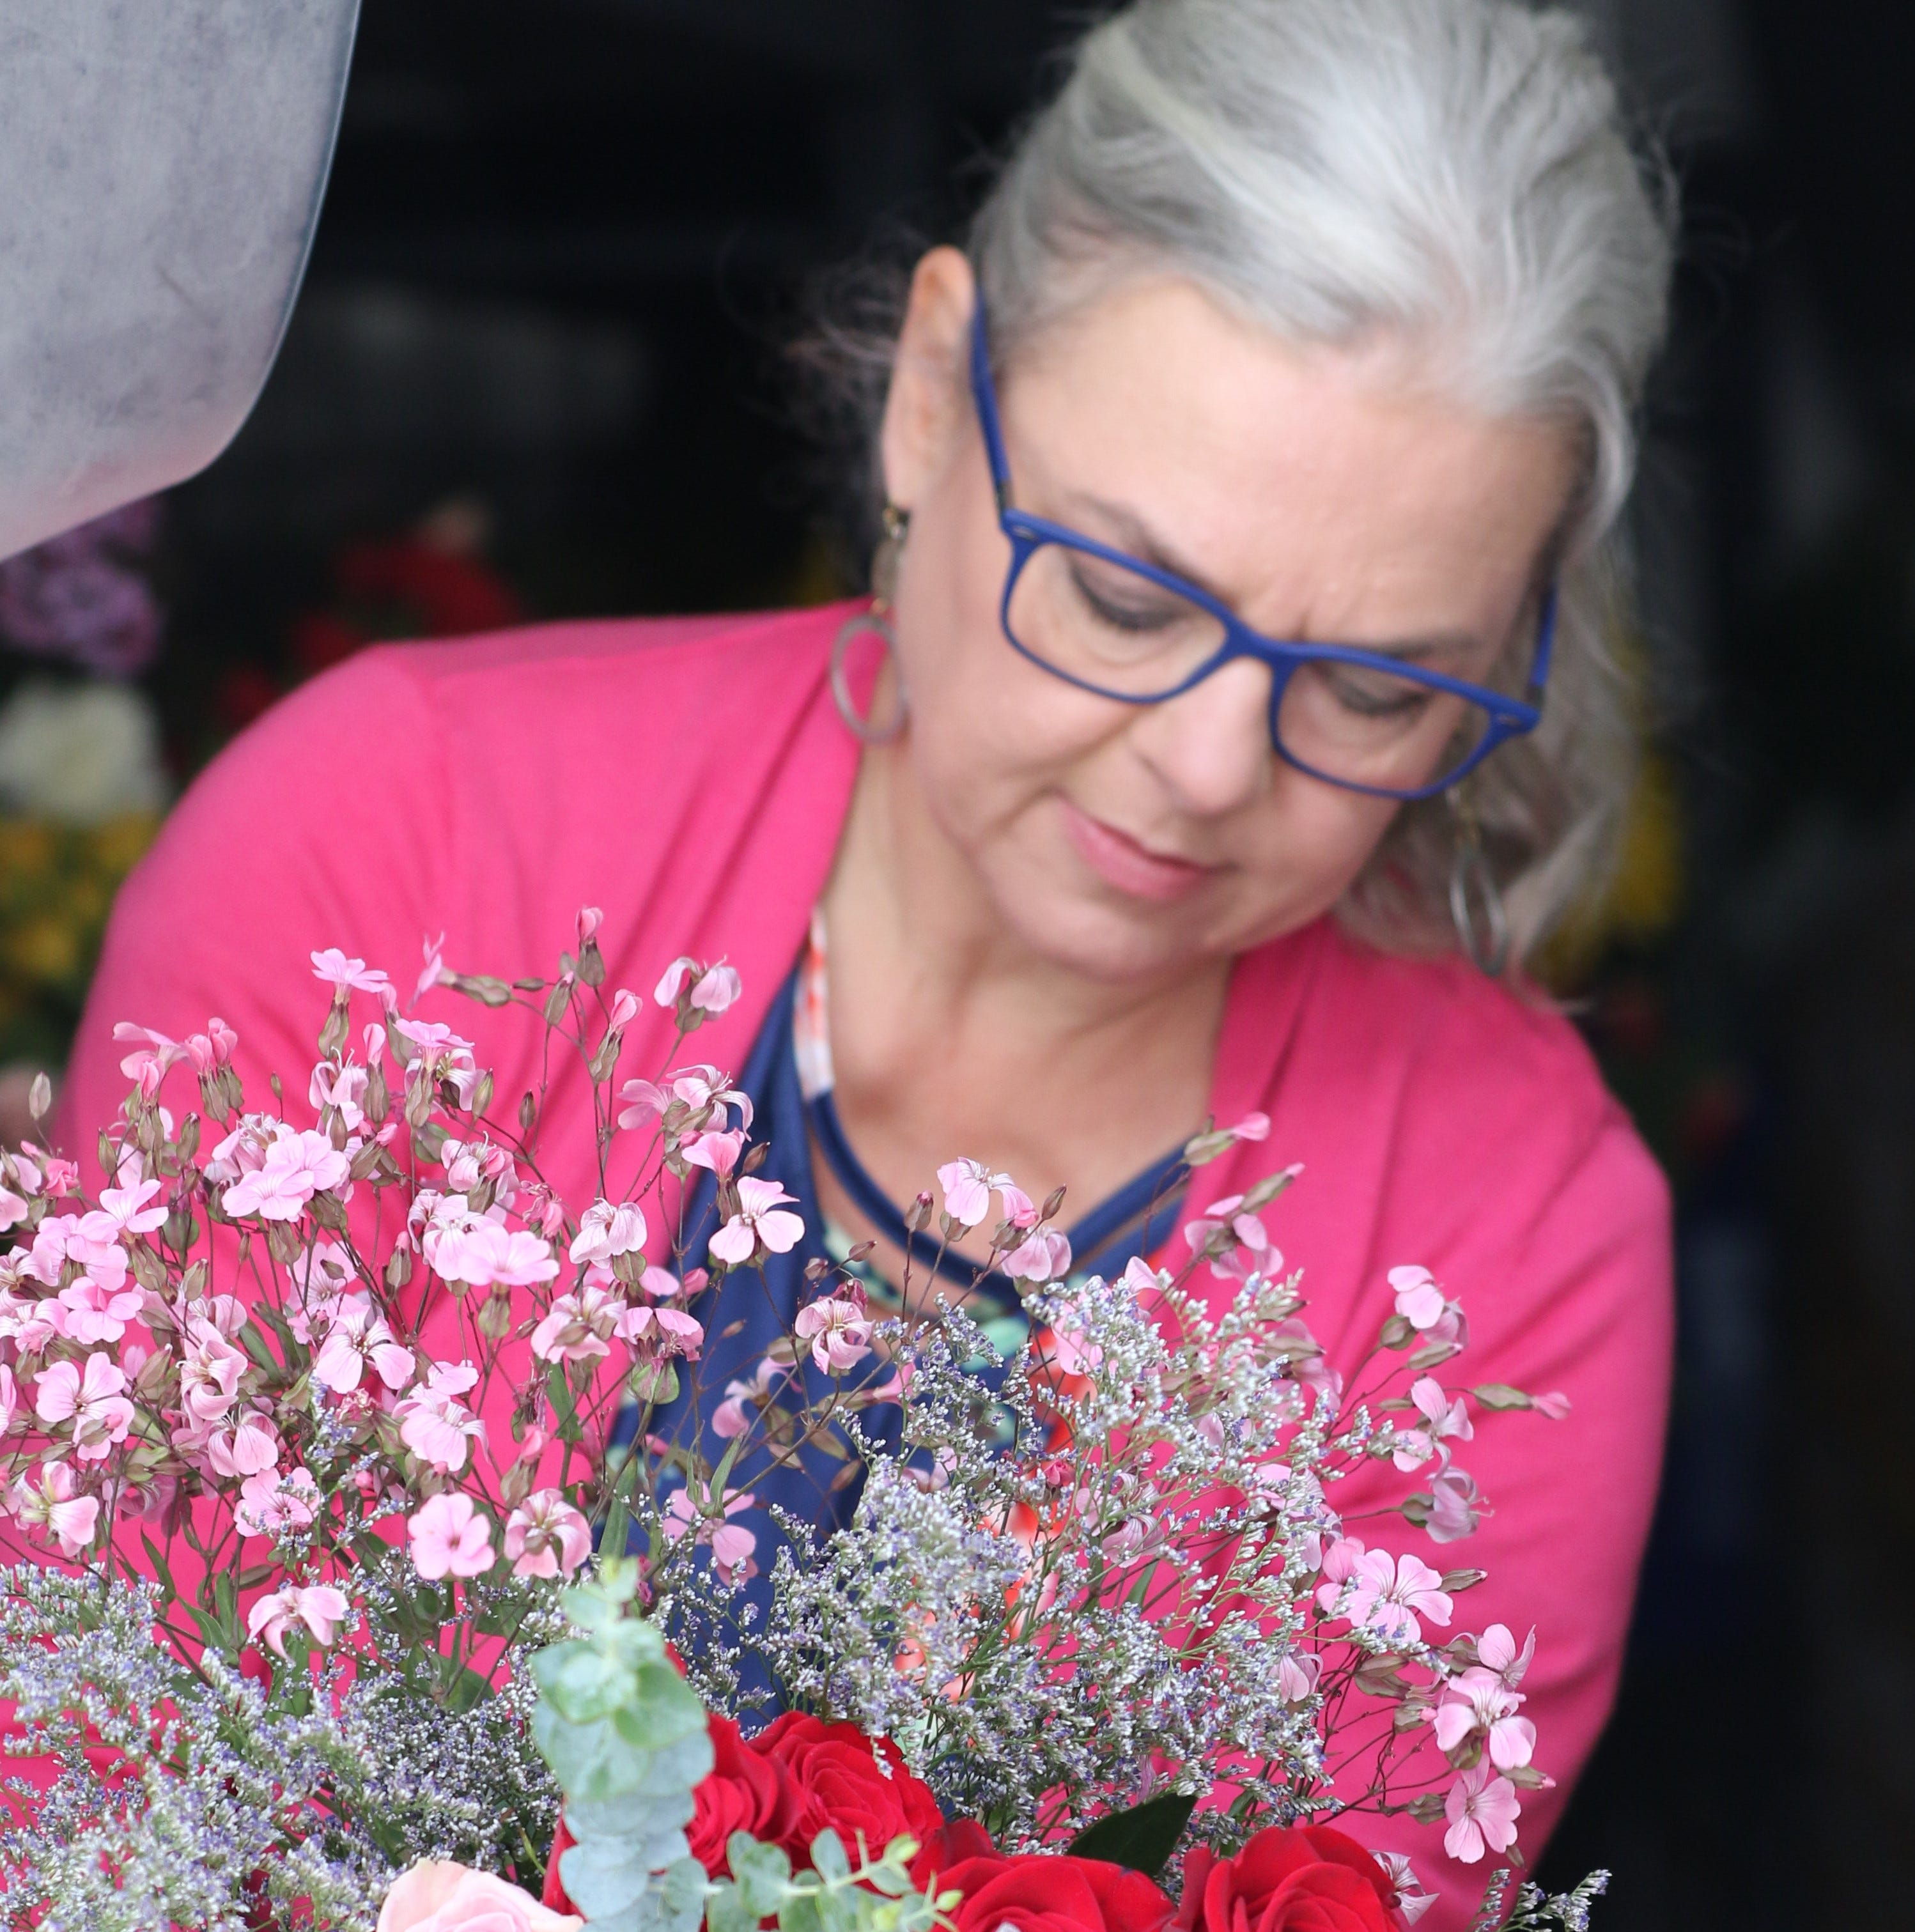 Angee's Flowers offers flower arrangements for every occasion